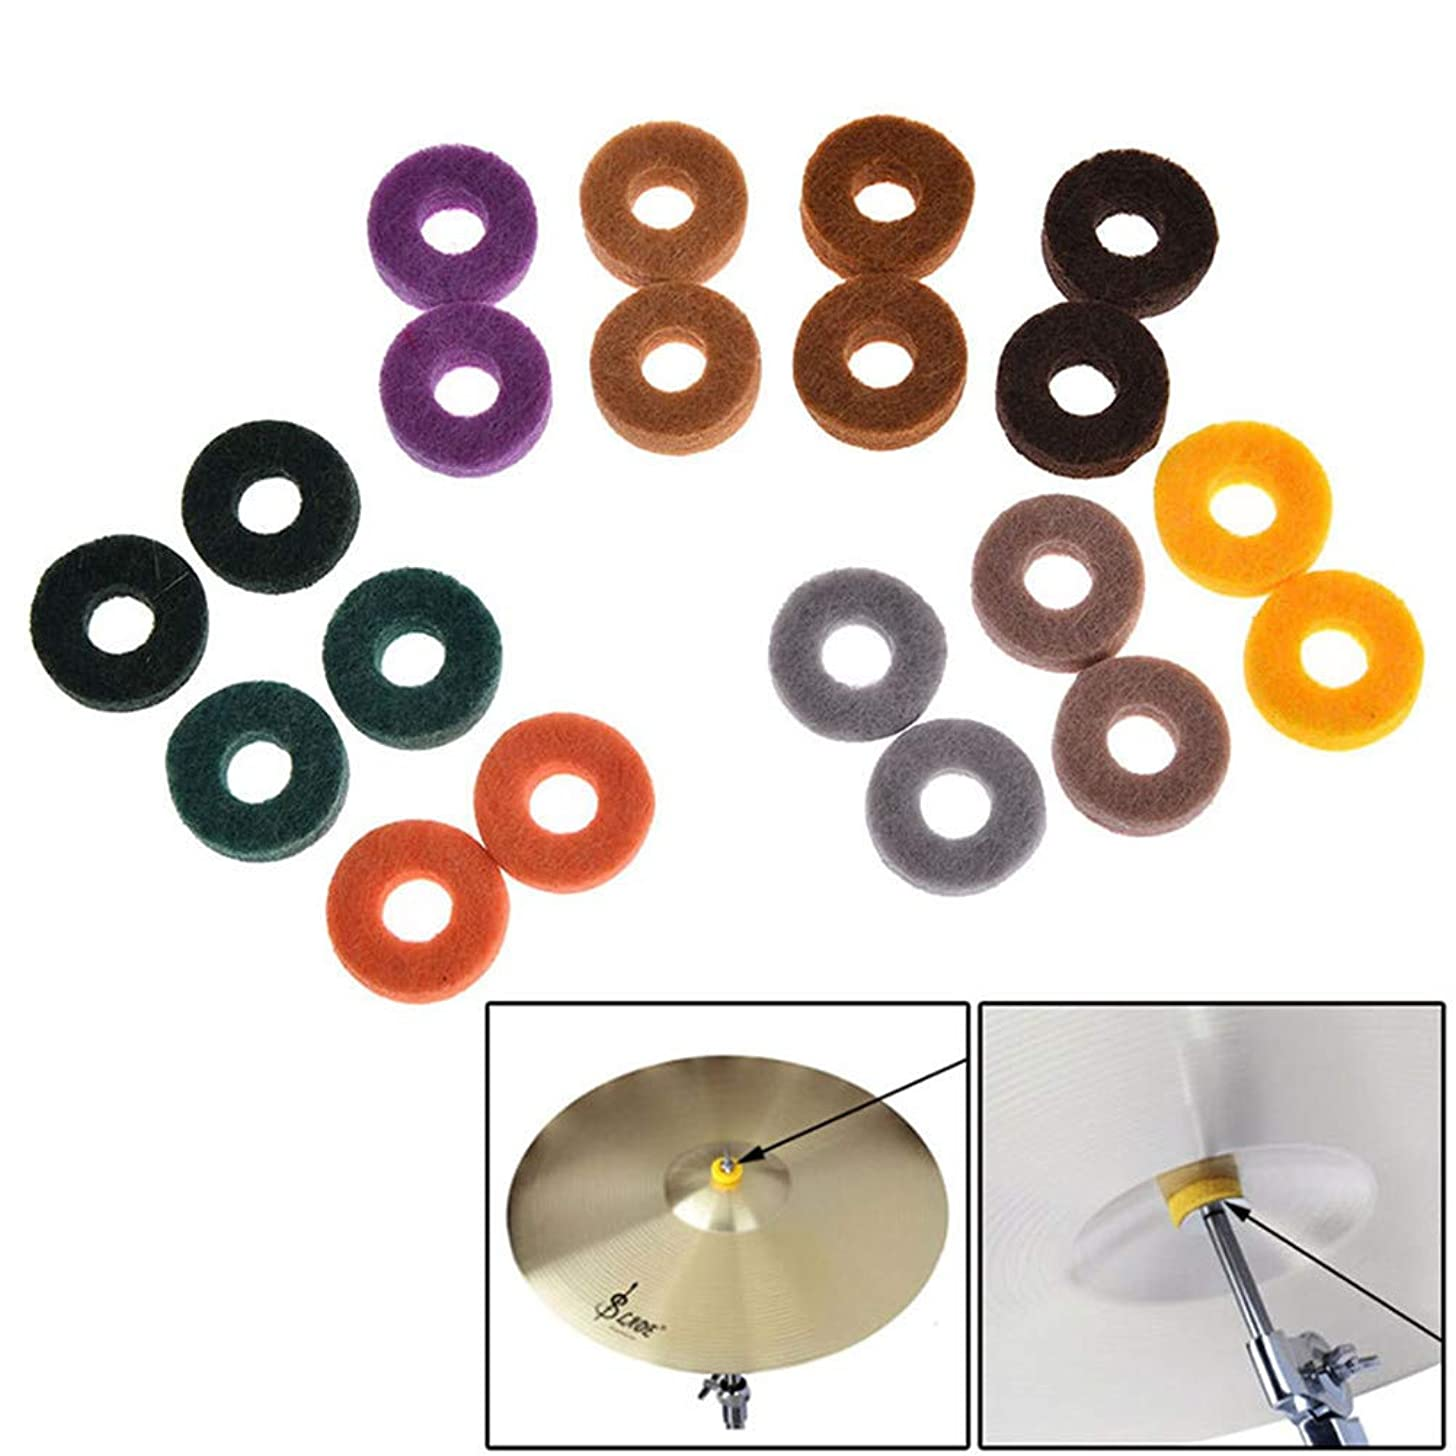 ROWEQPP 20 Pcs Round Soft Cymbal Stand Felt Washer Pad Replacement Cymbals Felt Pad Musical Instrument Accessories (Random Color)